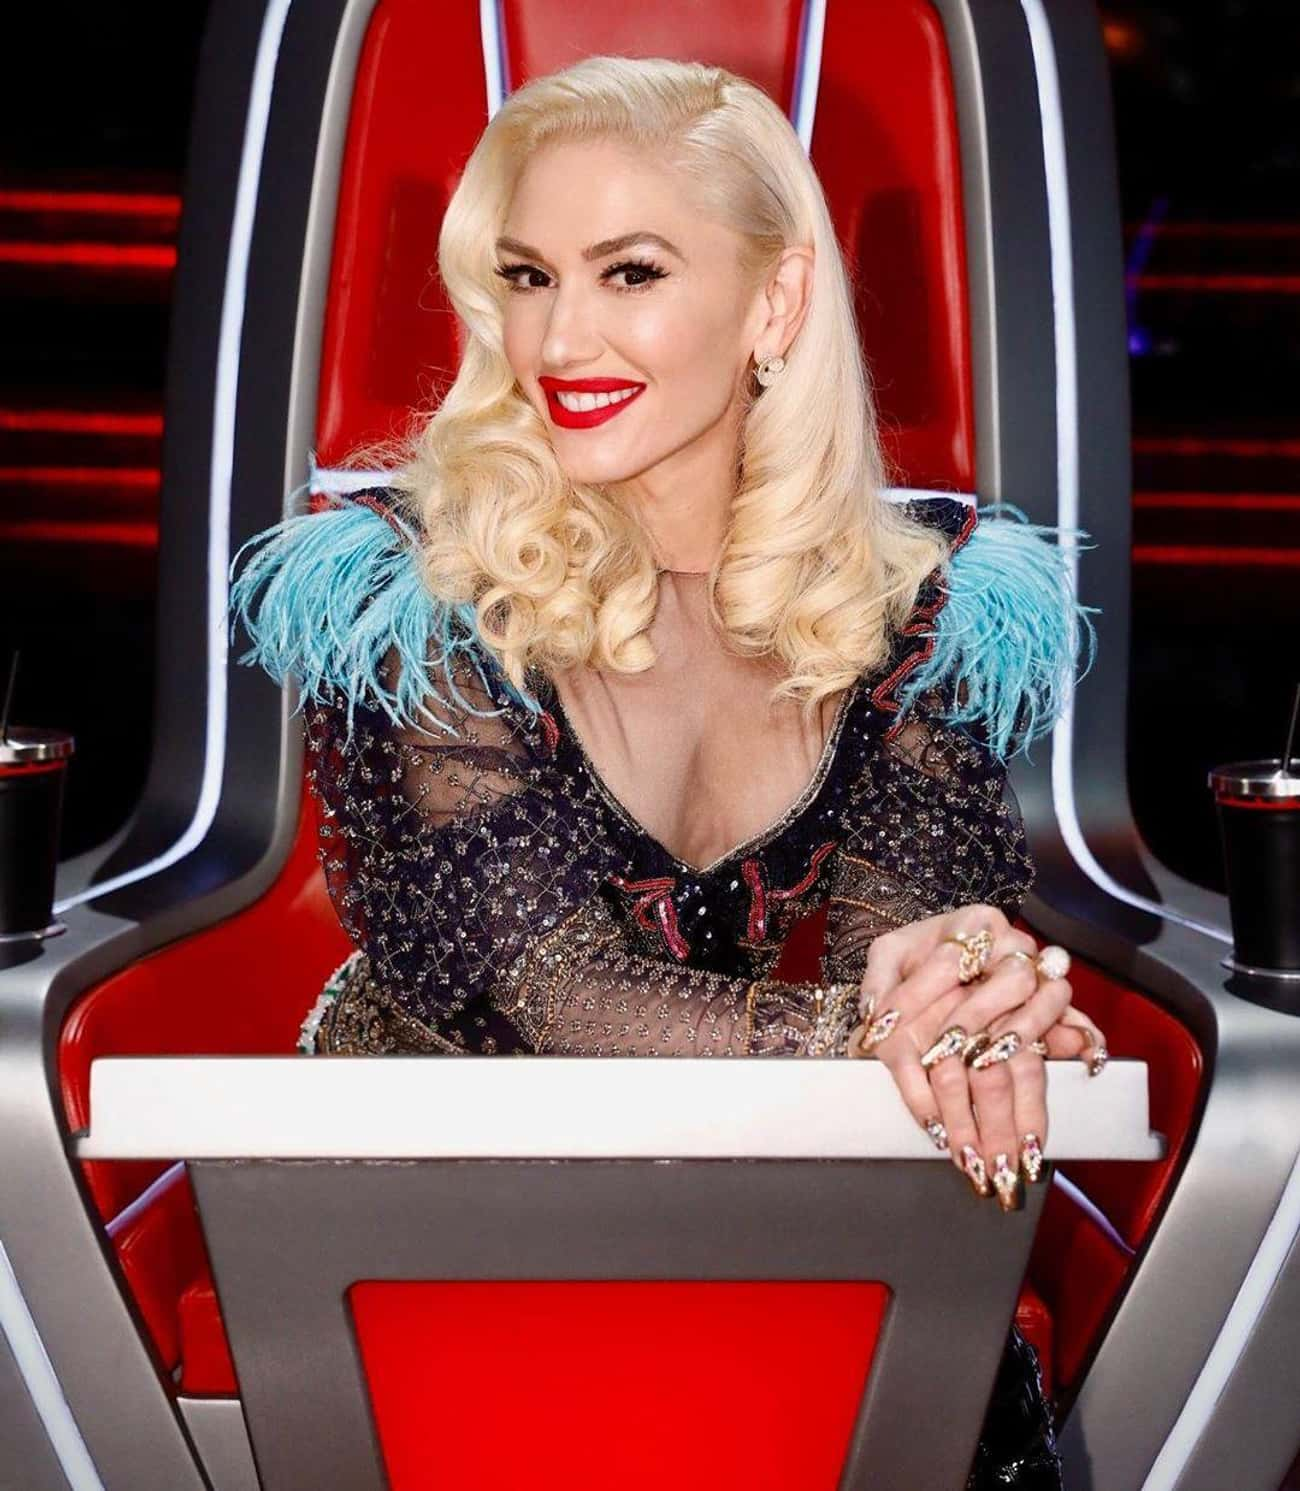 Gwen Stefani is listed (or ranked) 1 on the list 25+ Famous Singers Who Are Libra